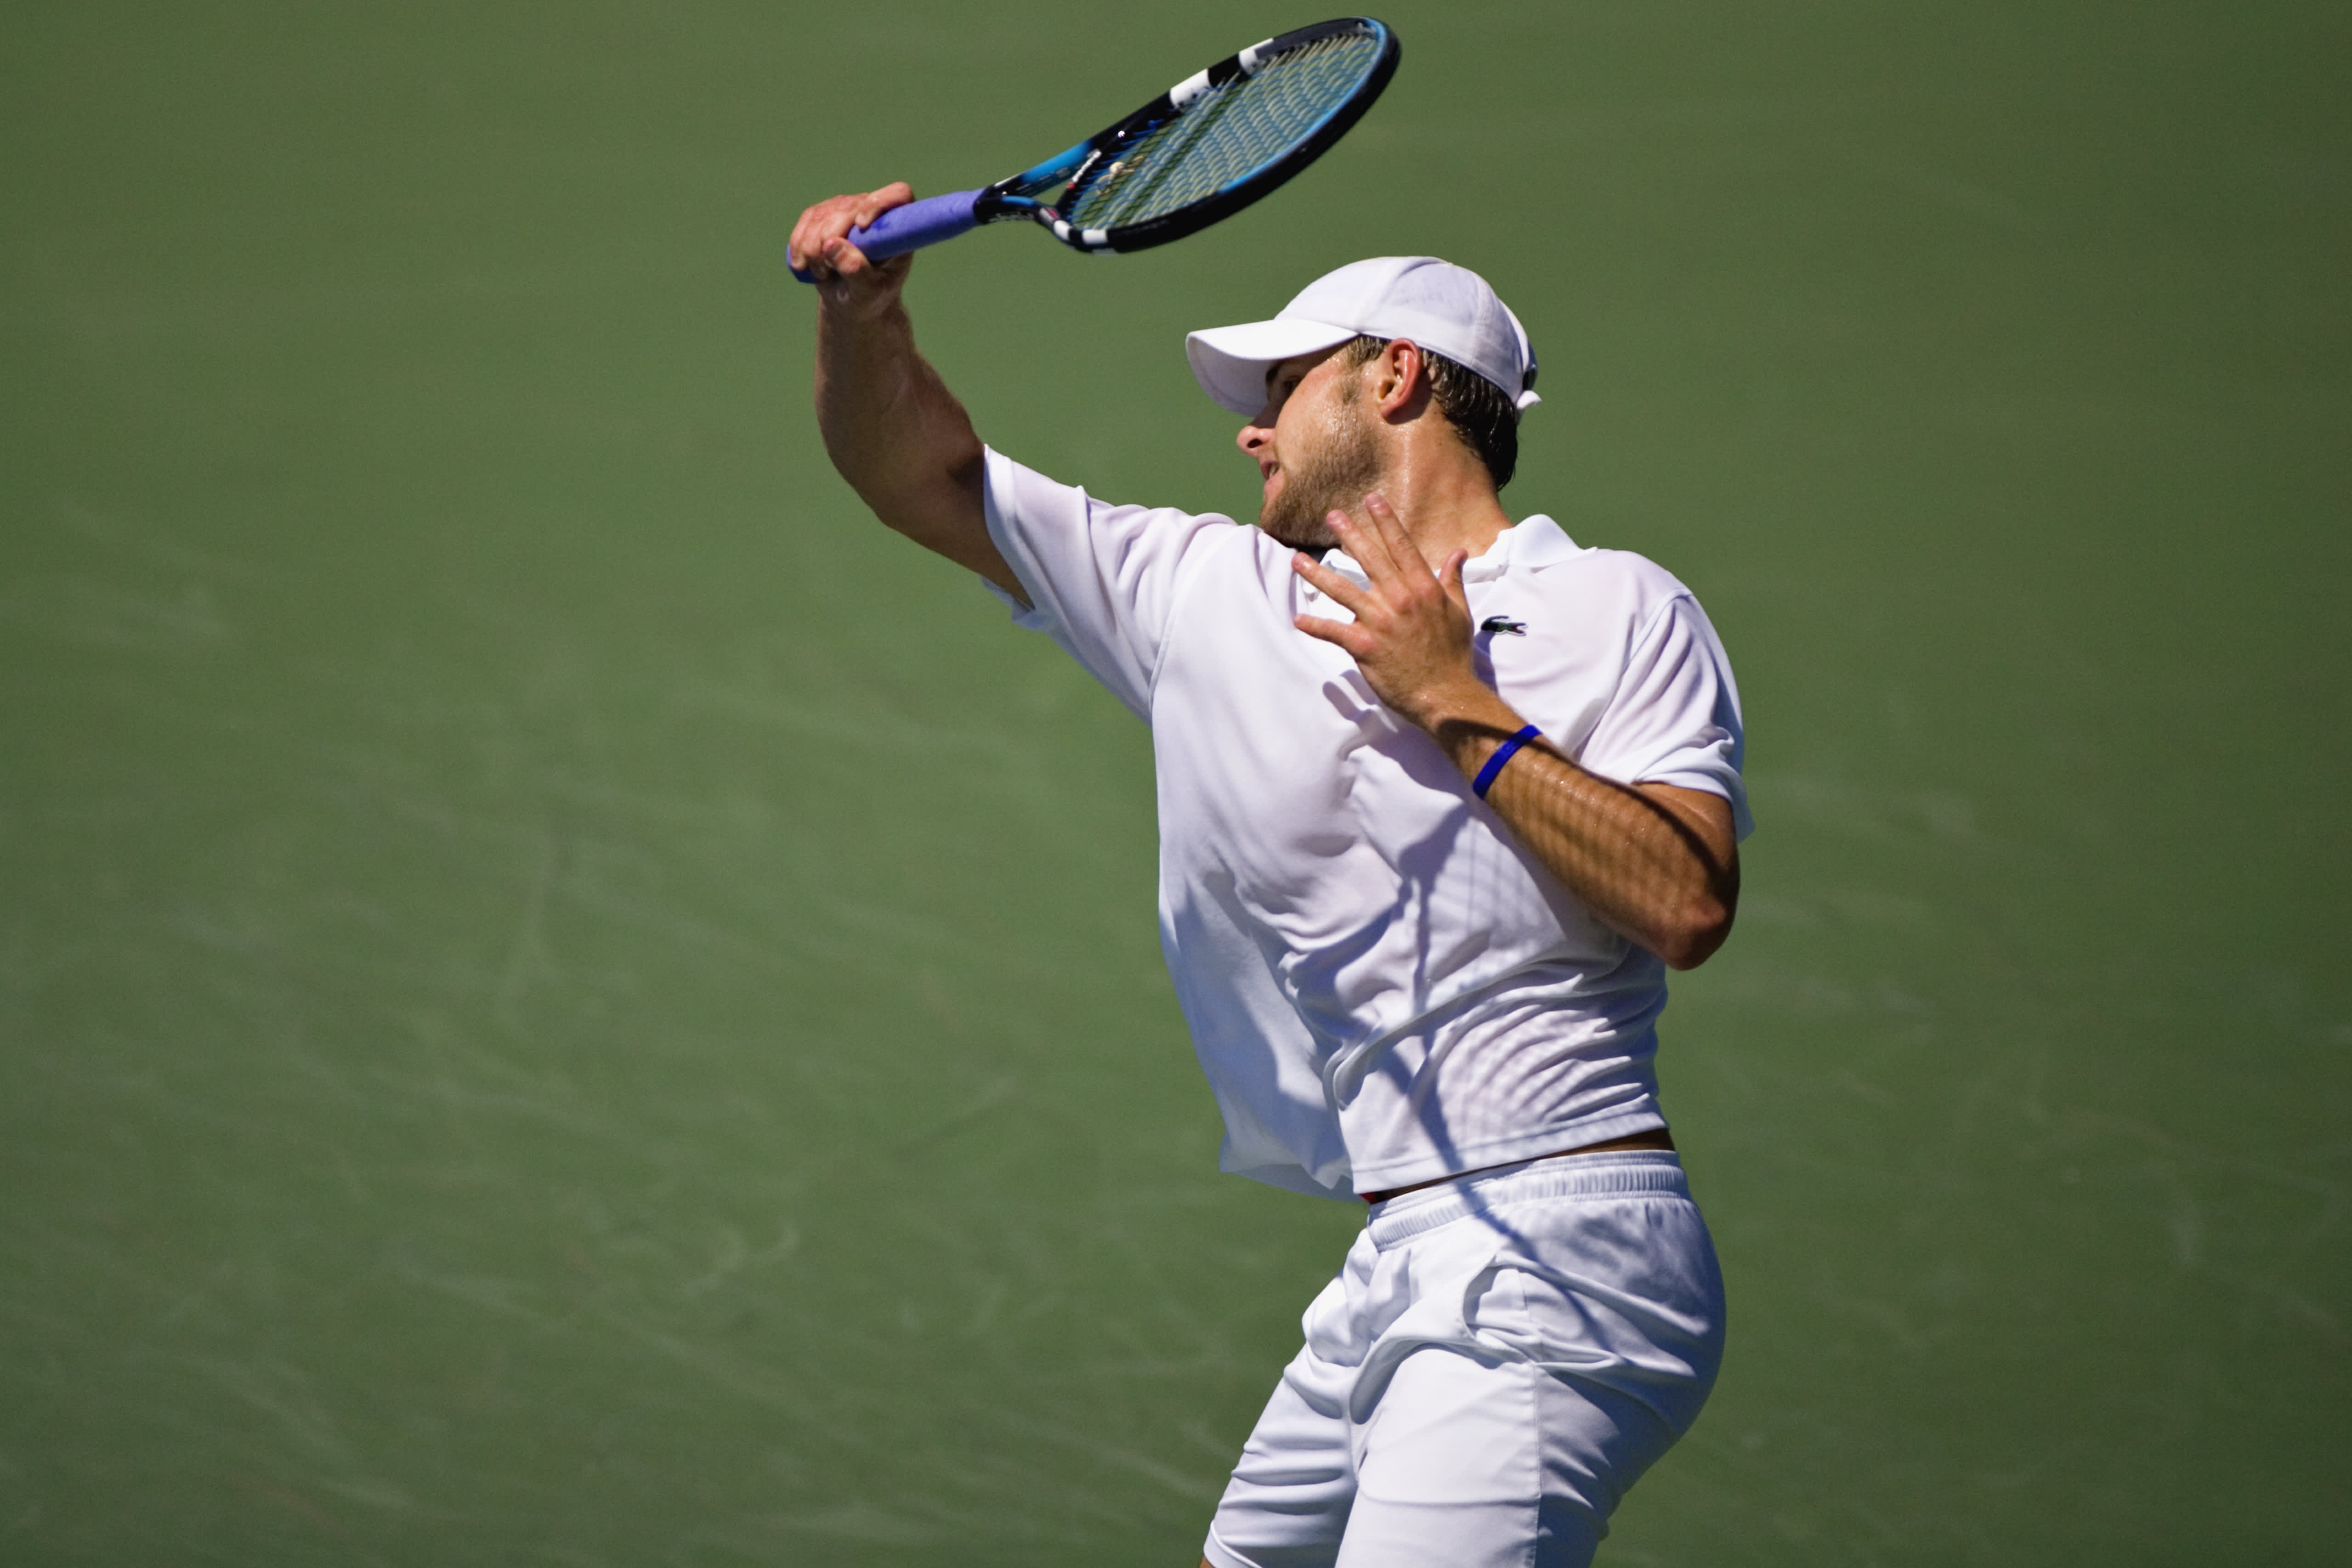 Tennis legend Andy Roddick wants you to save your money. Here's how he did it